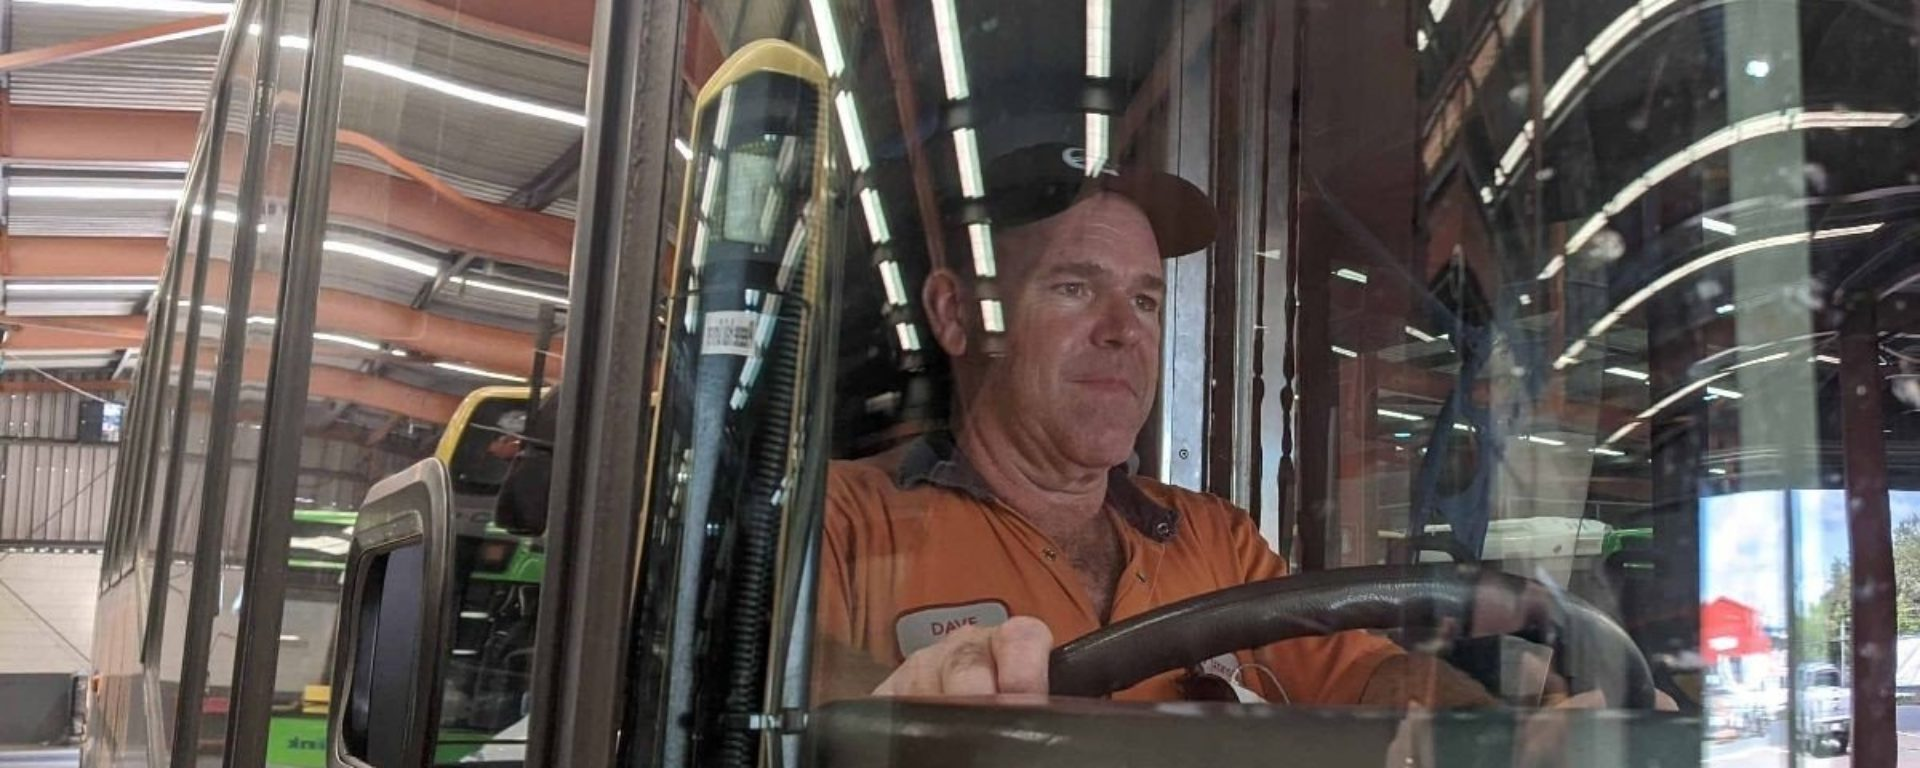 queensland_bus_cleaning_team